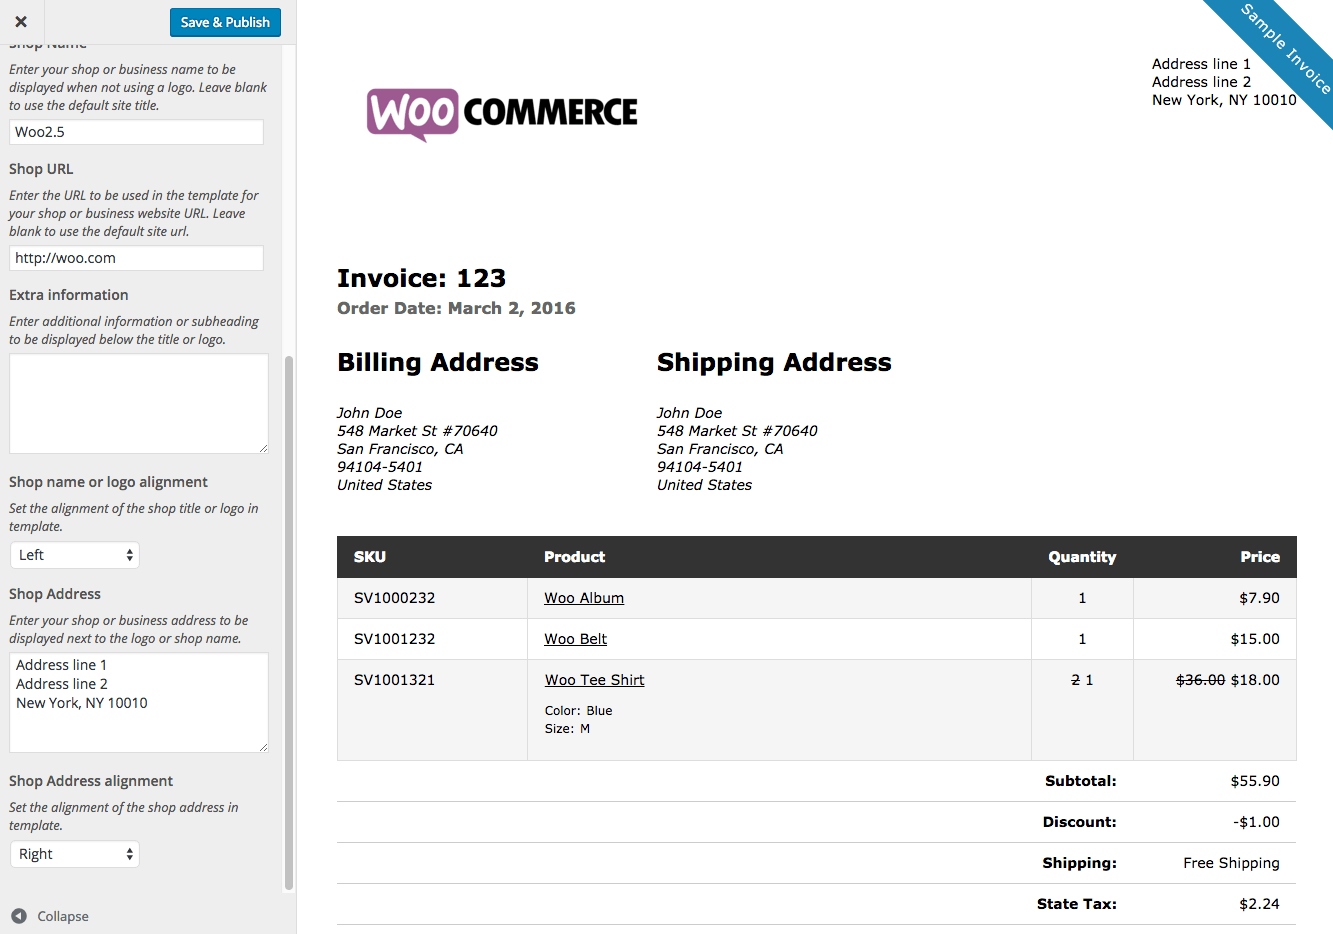 Weirdmailus  Prepossessing Woocommerce Print Invoices Amp Packing Lists  Woocommerce Docs With Exquisite Woocommerce Print Invoices  Packing Lists Customizer With Enchanting Business Invoicing Also Instant Invoice In Addition Service Rendered Invoice And Mazda Invoice Price  As Well As Invoice Template Html Additionally Invoice Purchase Order From Docswoocommercecom With Weirdmailus  Exquisite Woocommerce Print Invoices Amp Packing Lists  Woocommerce Docs With Enchanting Woocommerce Print Invoices  Packing Lists Customizer And Prepossessing Business Invoicing Also Instant Invoice In Addition Service Rendered Invoice From Docswoocommercecom